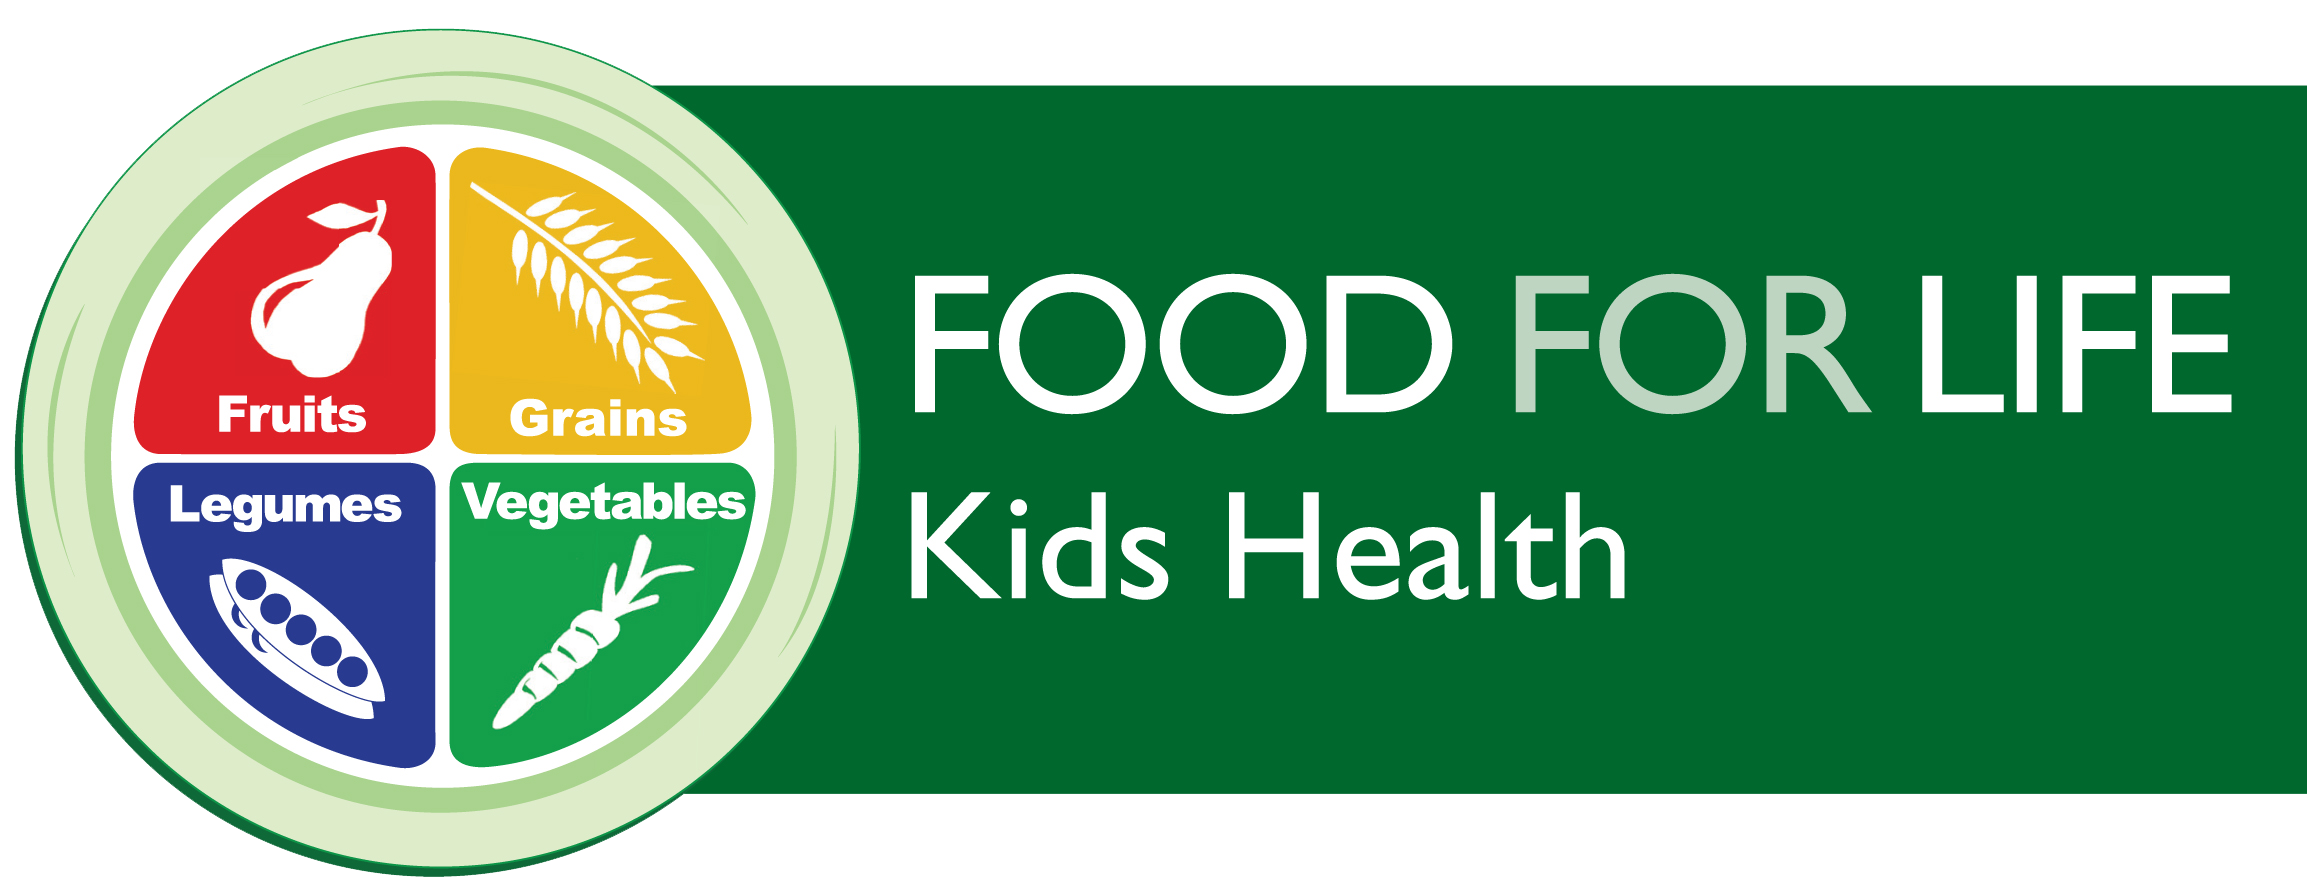 Nutritious Way Food For Life Kids Health